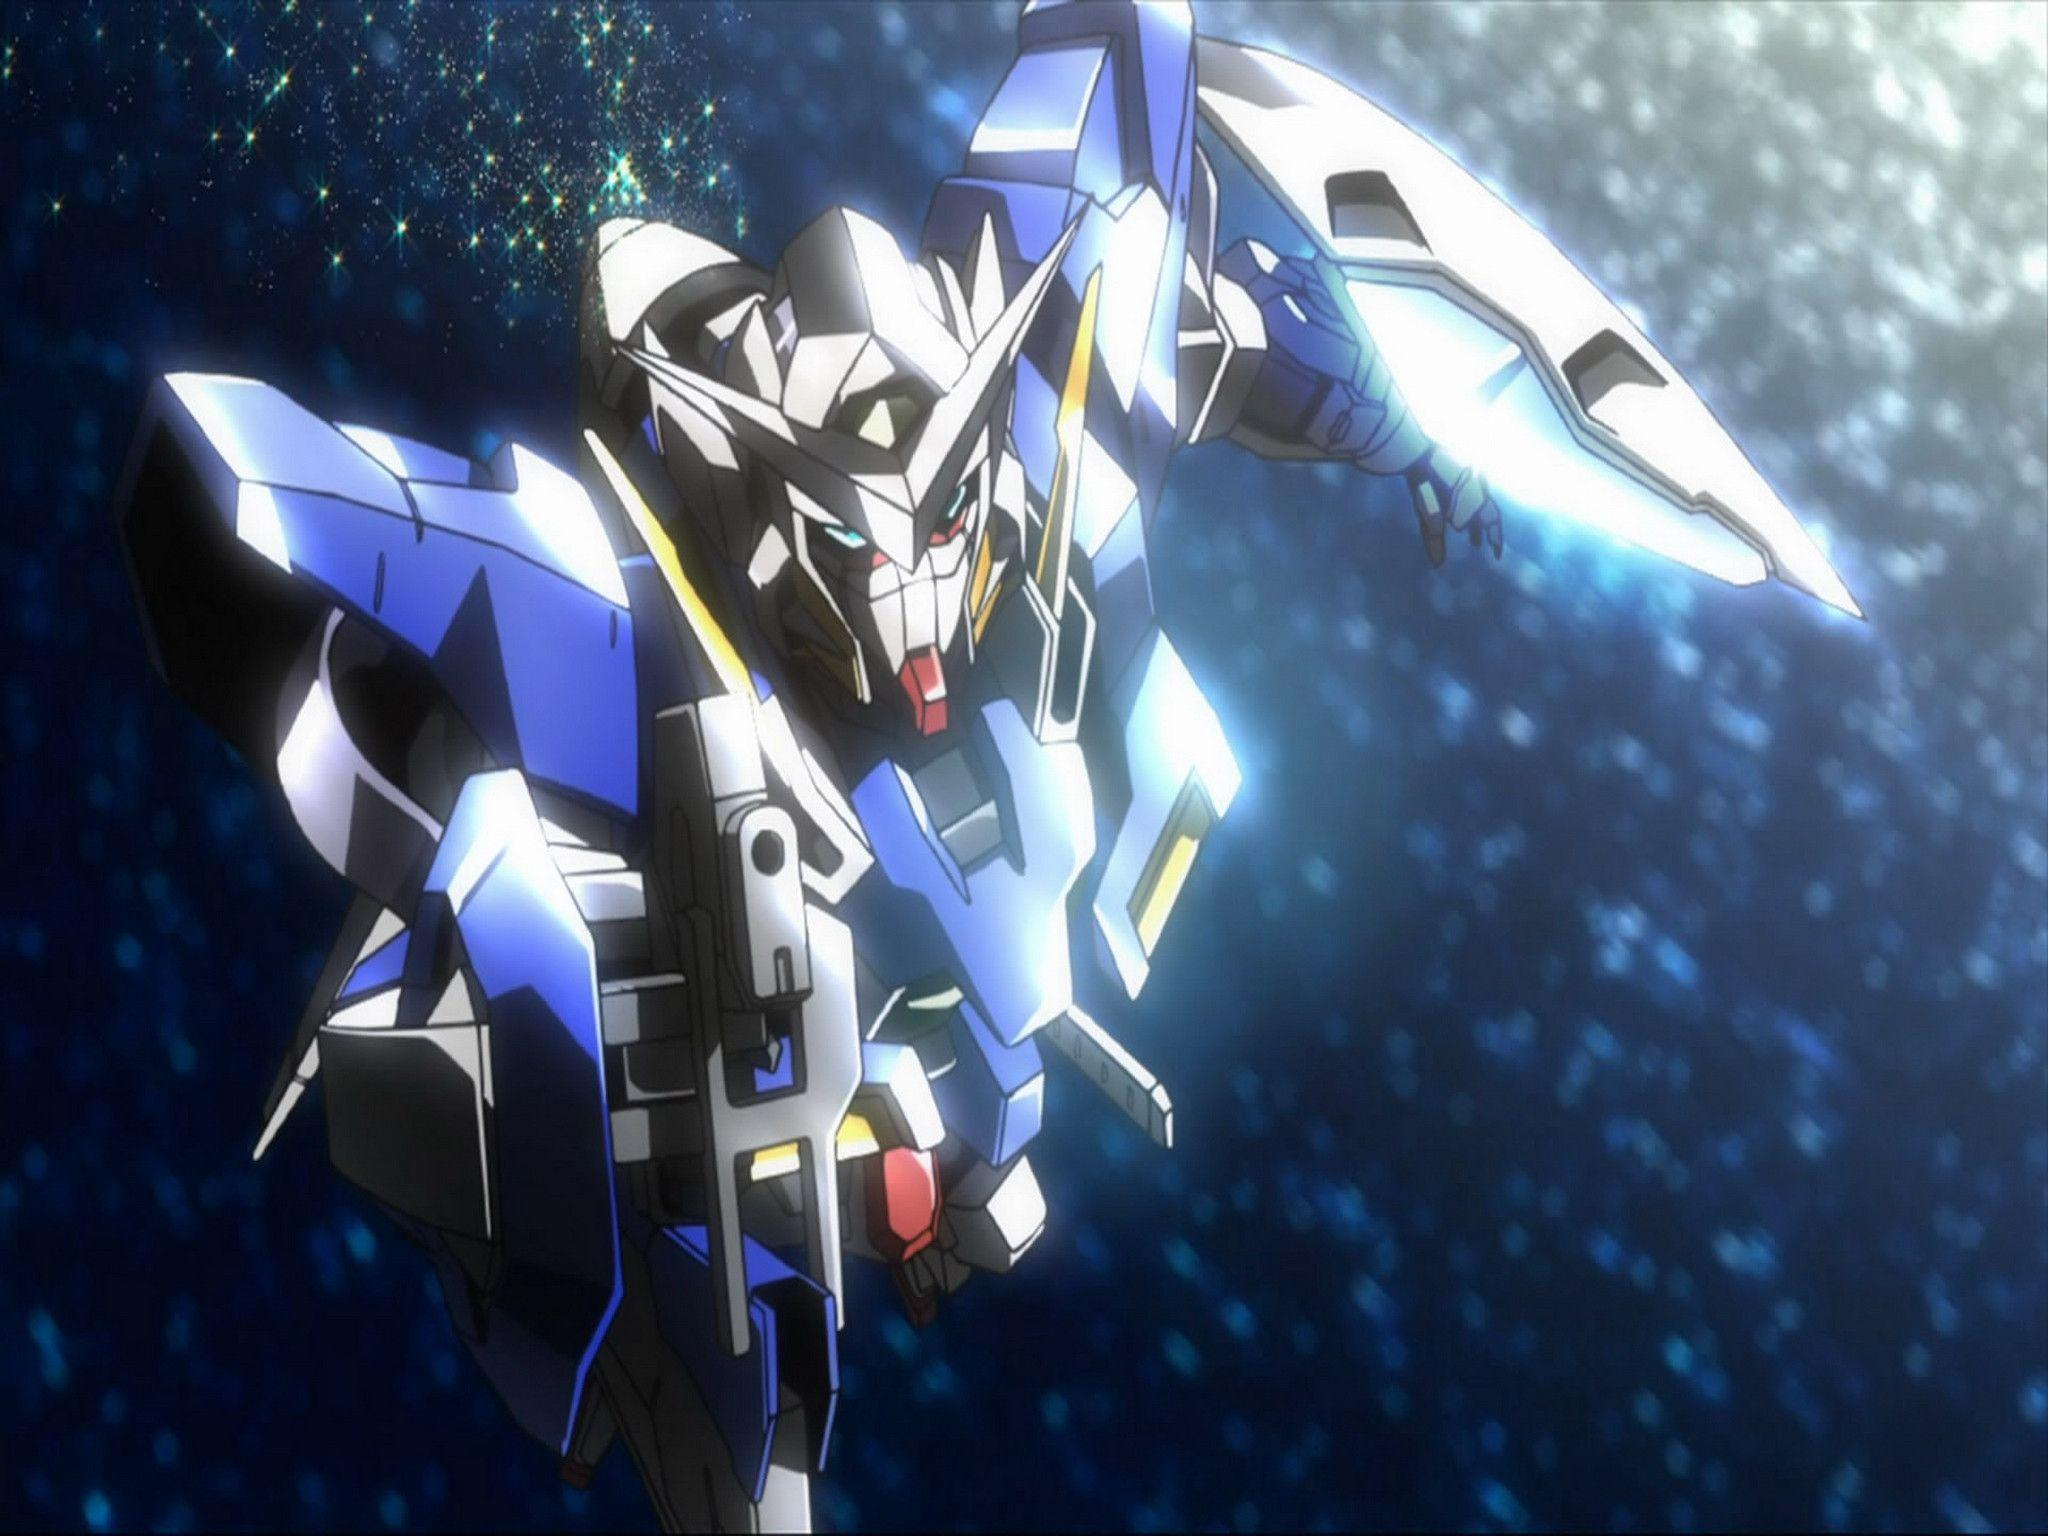 Gundam 00 Wallpapers HD - Wallpaper Cave